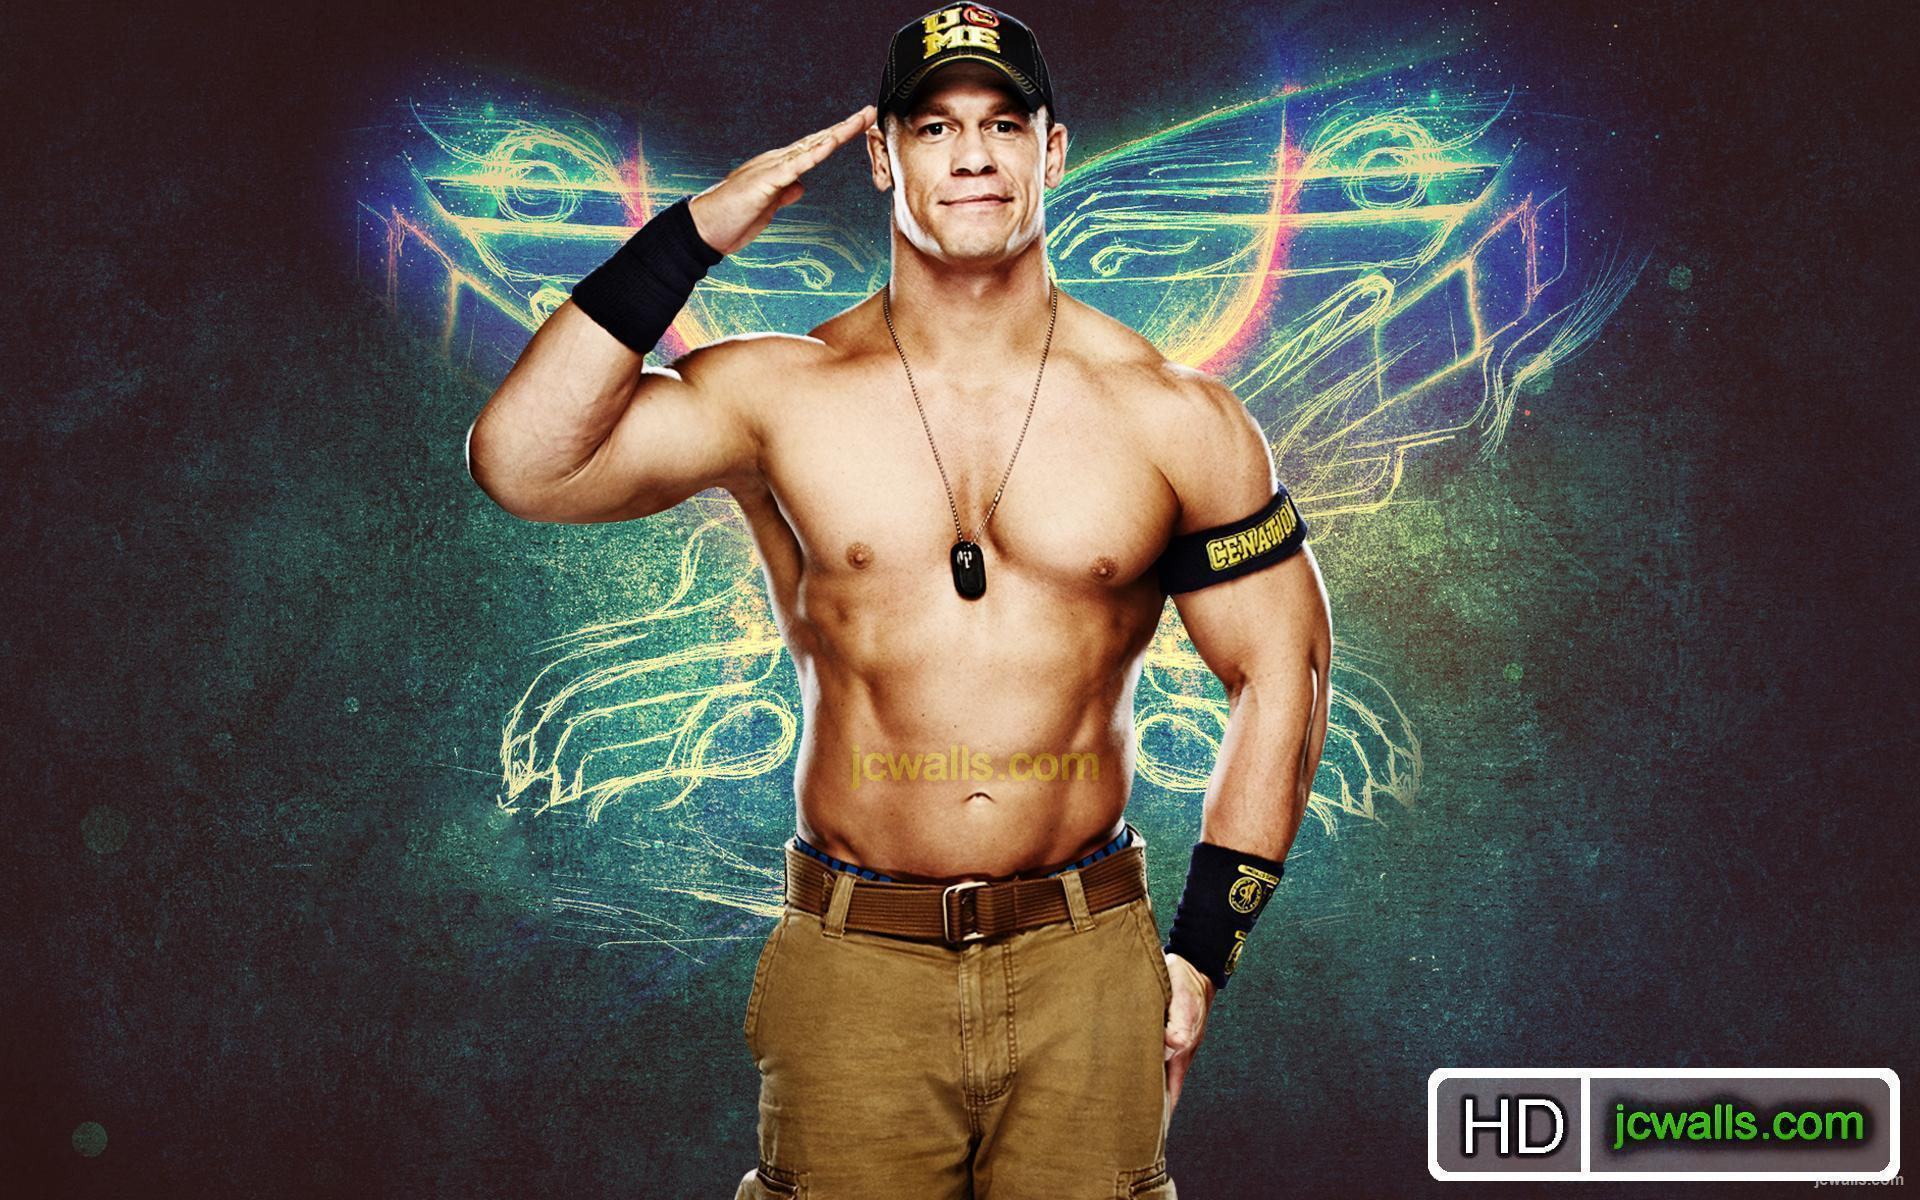 john cena wallpapers high definition for iphone